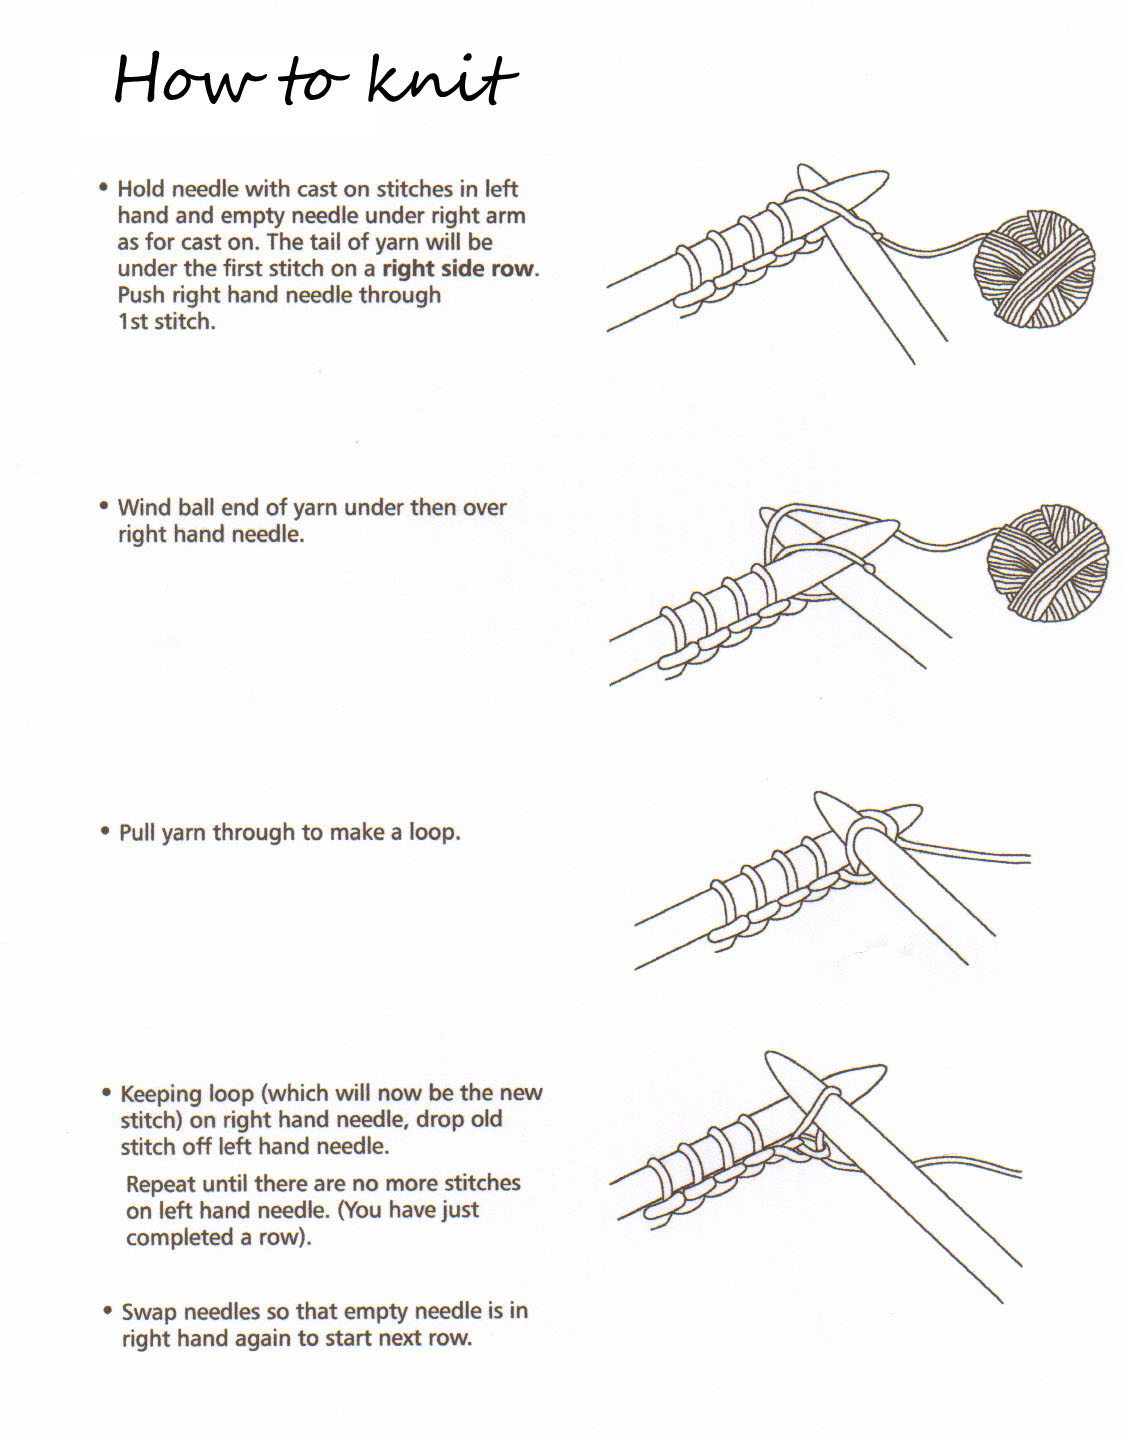 How To Cast Off Stitches When Knitting : HOW TO KNIT.